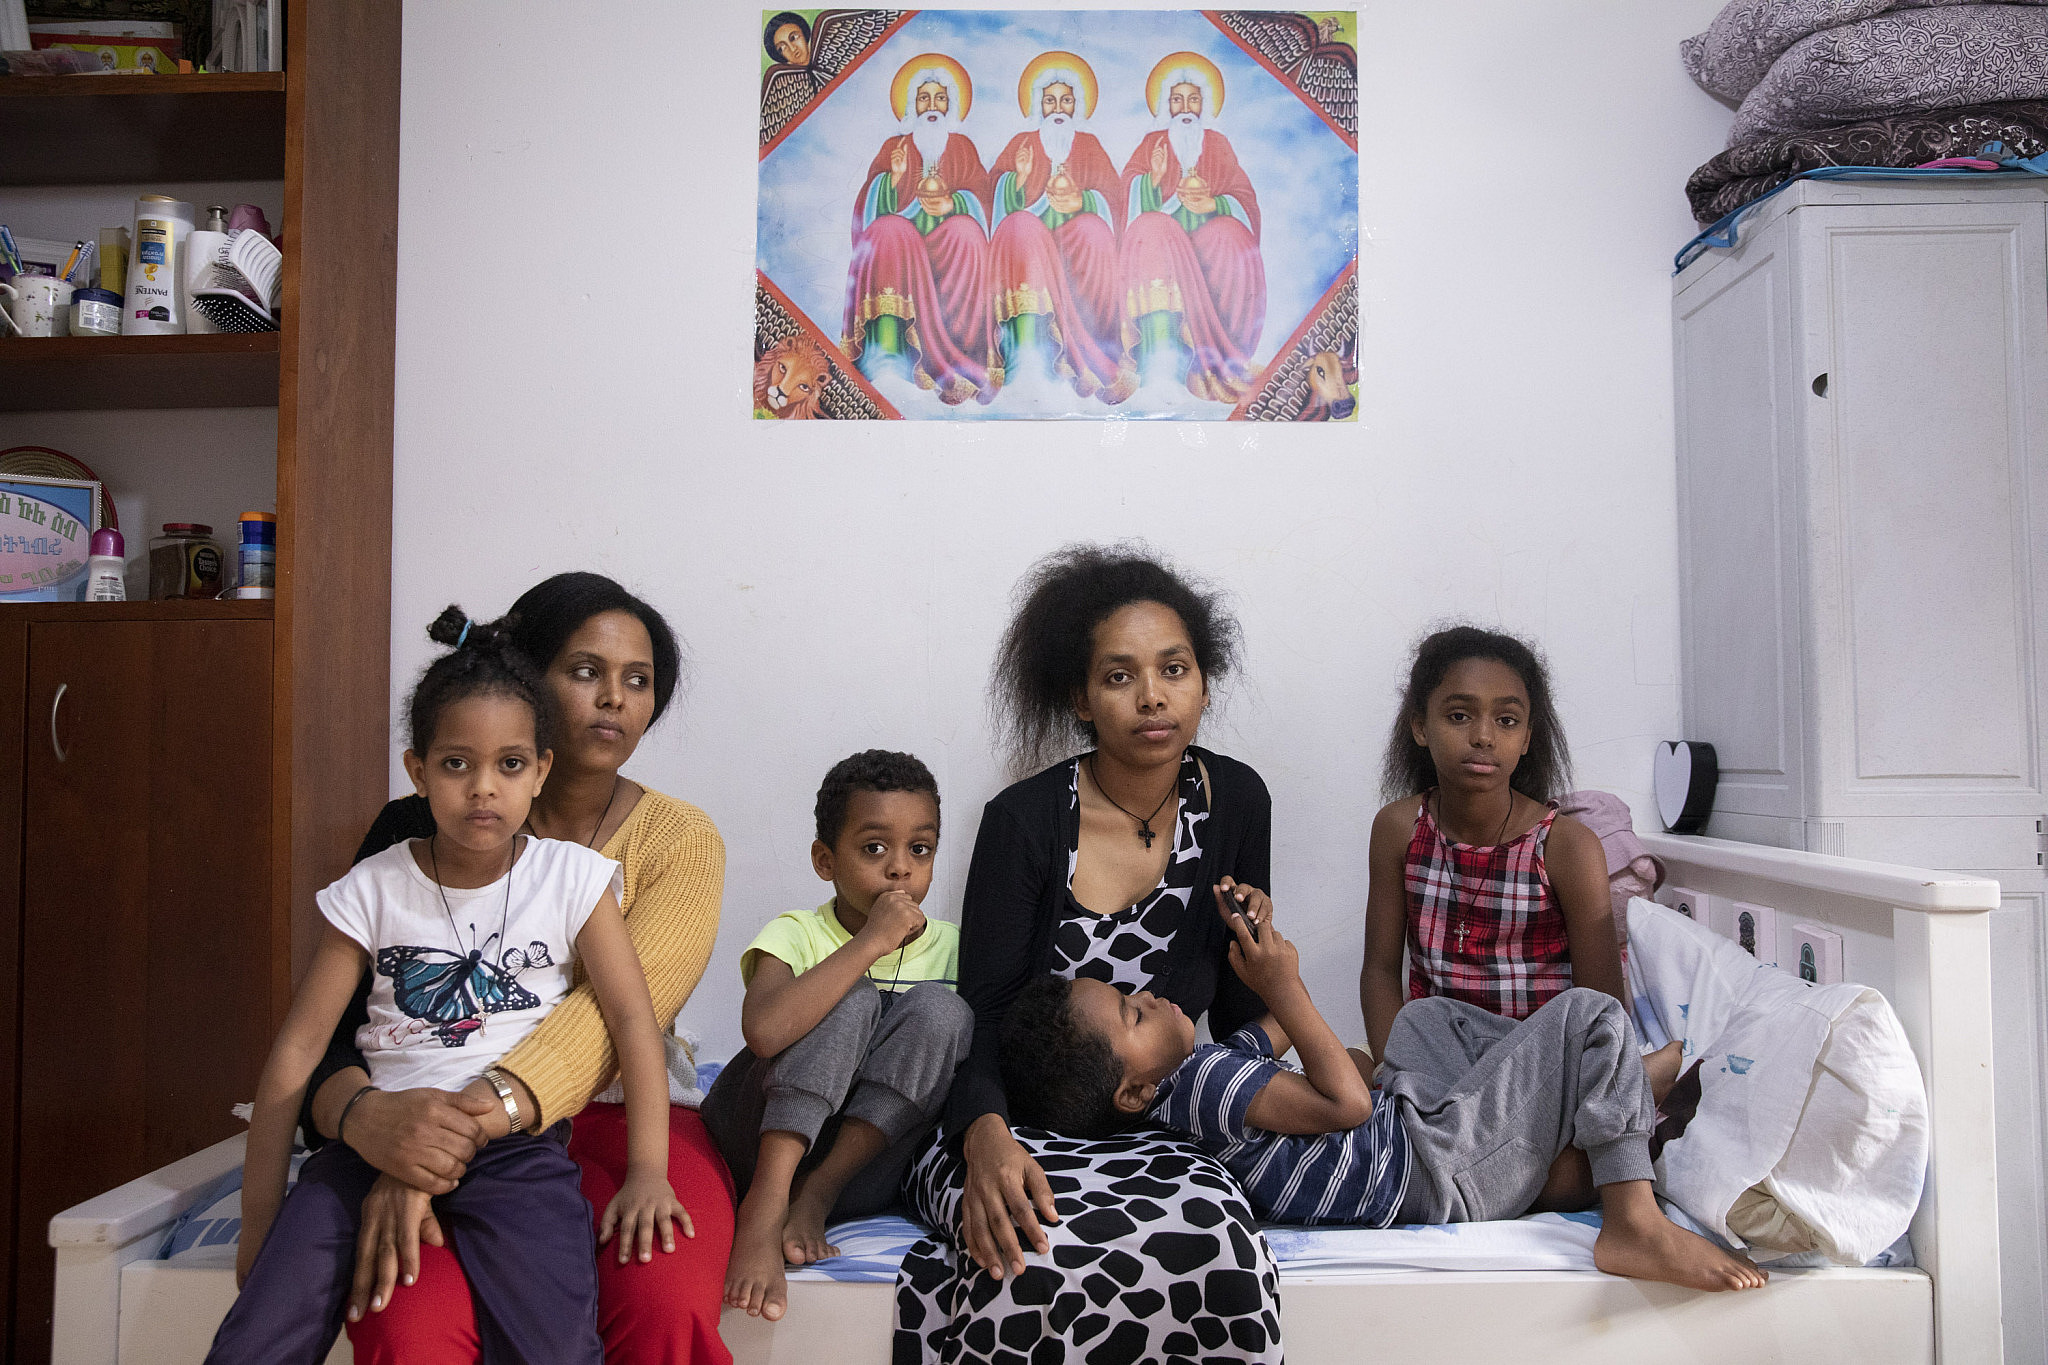 From right: Tamarza, a single mother (31) and her children Lydia (10), Hazravi (6), and Nabad (4). Left: Zahab (30), a single mother, and her daughter Jerusalem (6). Both have been in the country for about 10 years. Tamarza worked in a food factory before the crisis and is not currently working. Zahab was unemployed before the crisis.